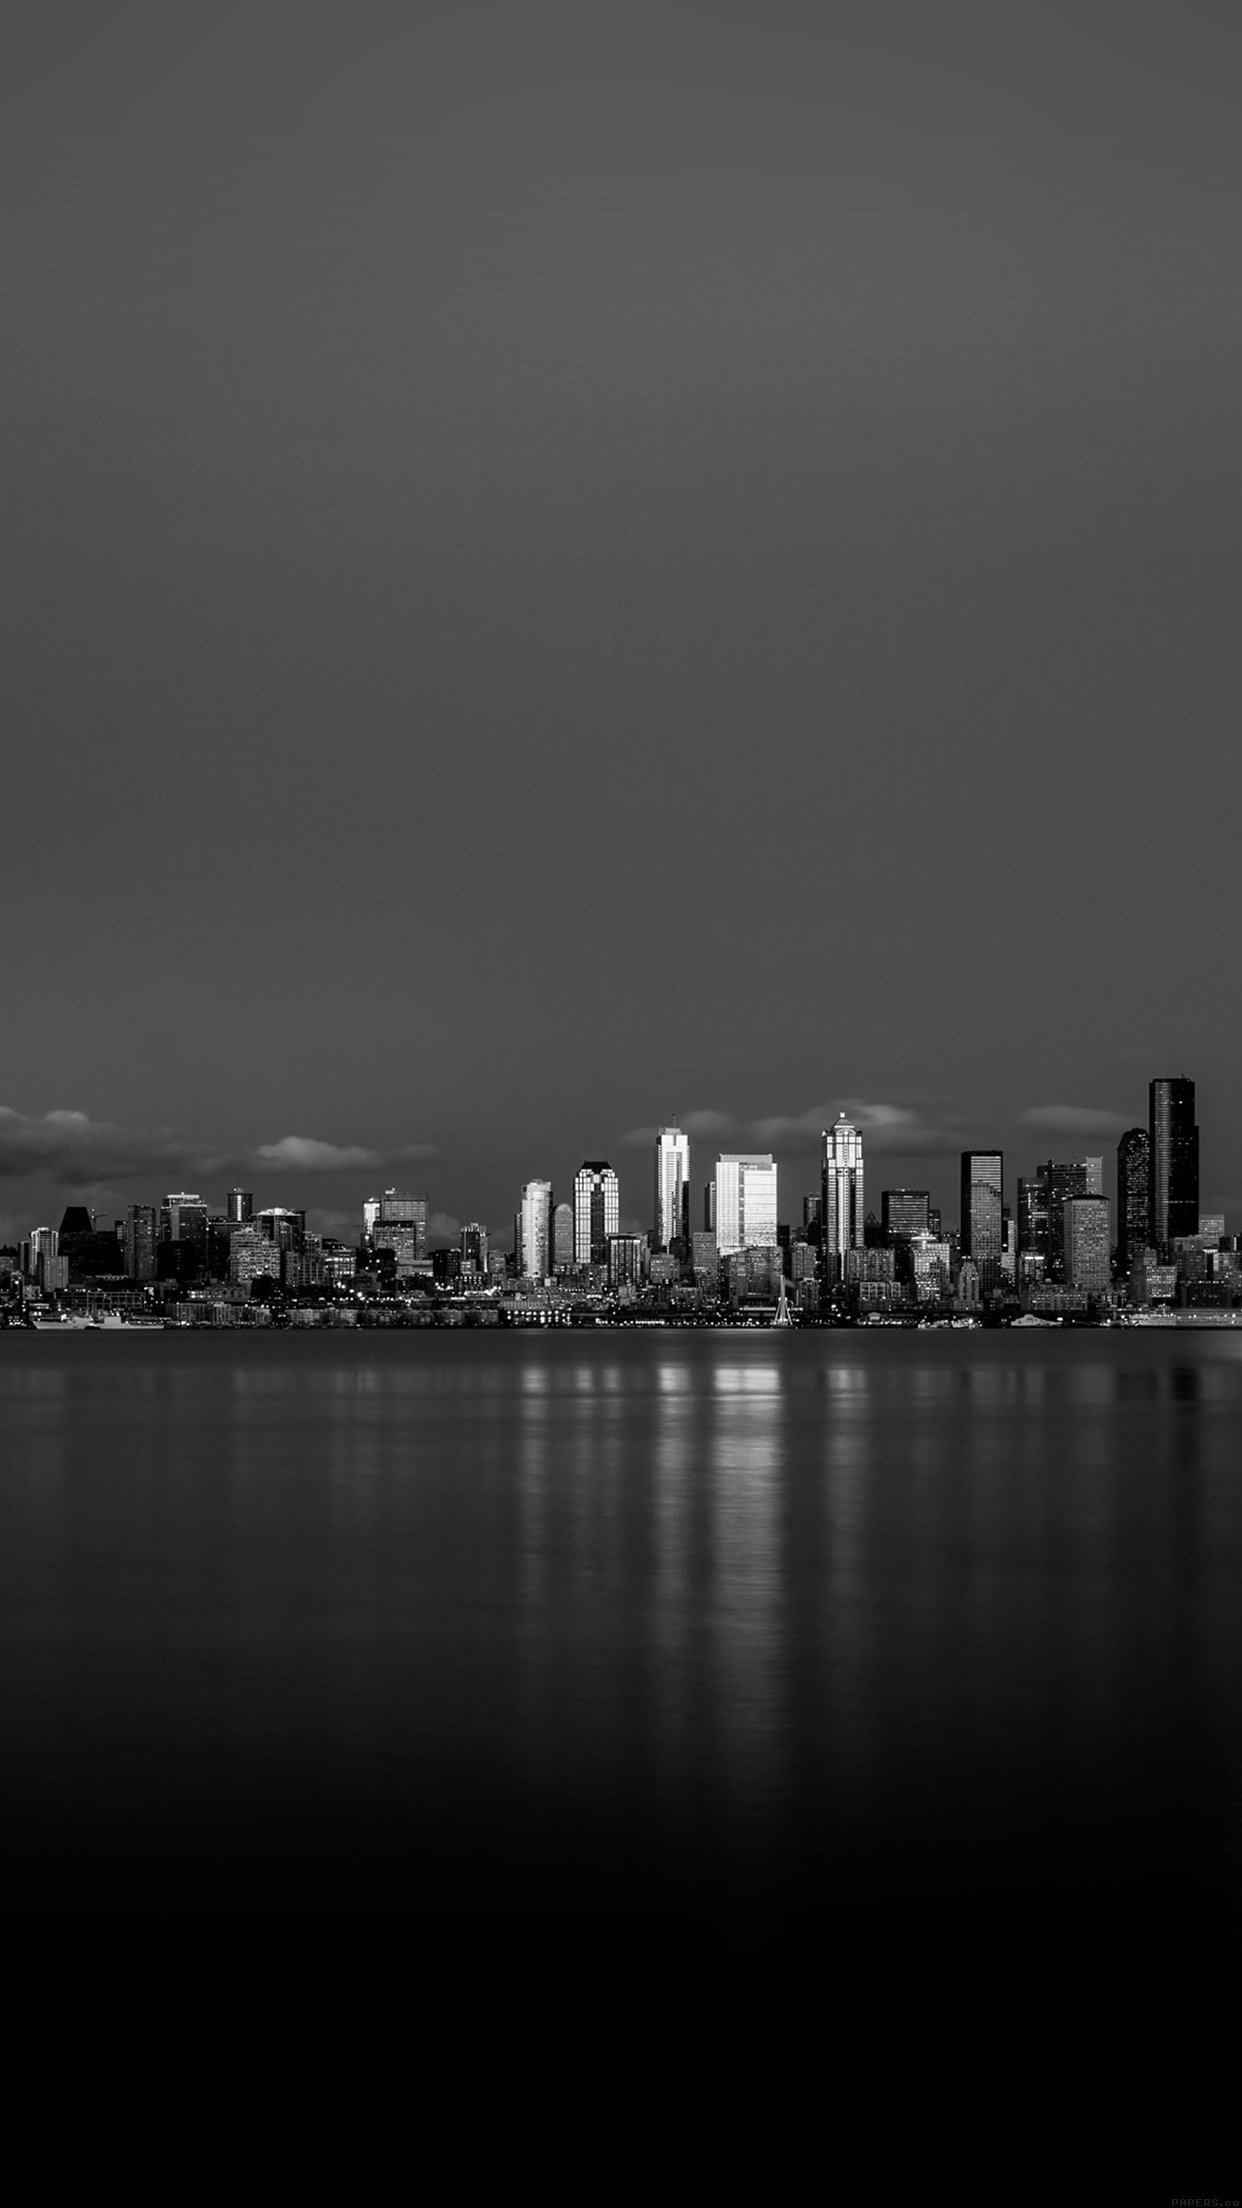 Night City View Dark Bw Nautre Art iPhone wallpaper